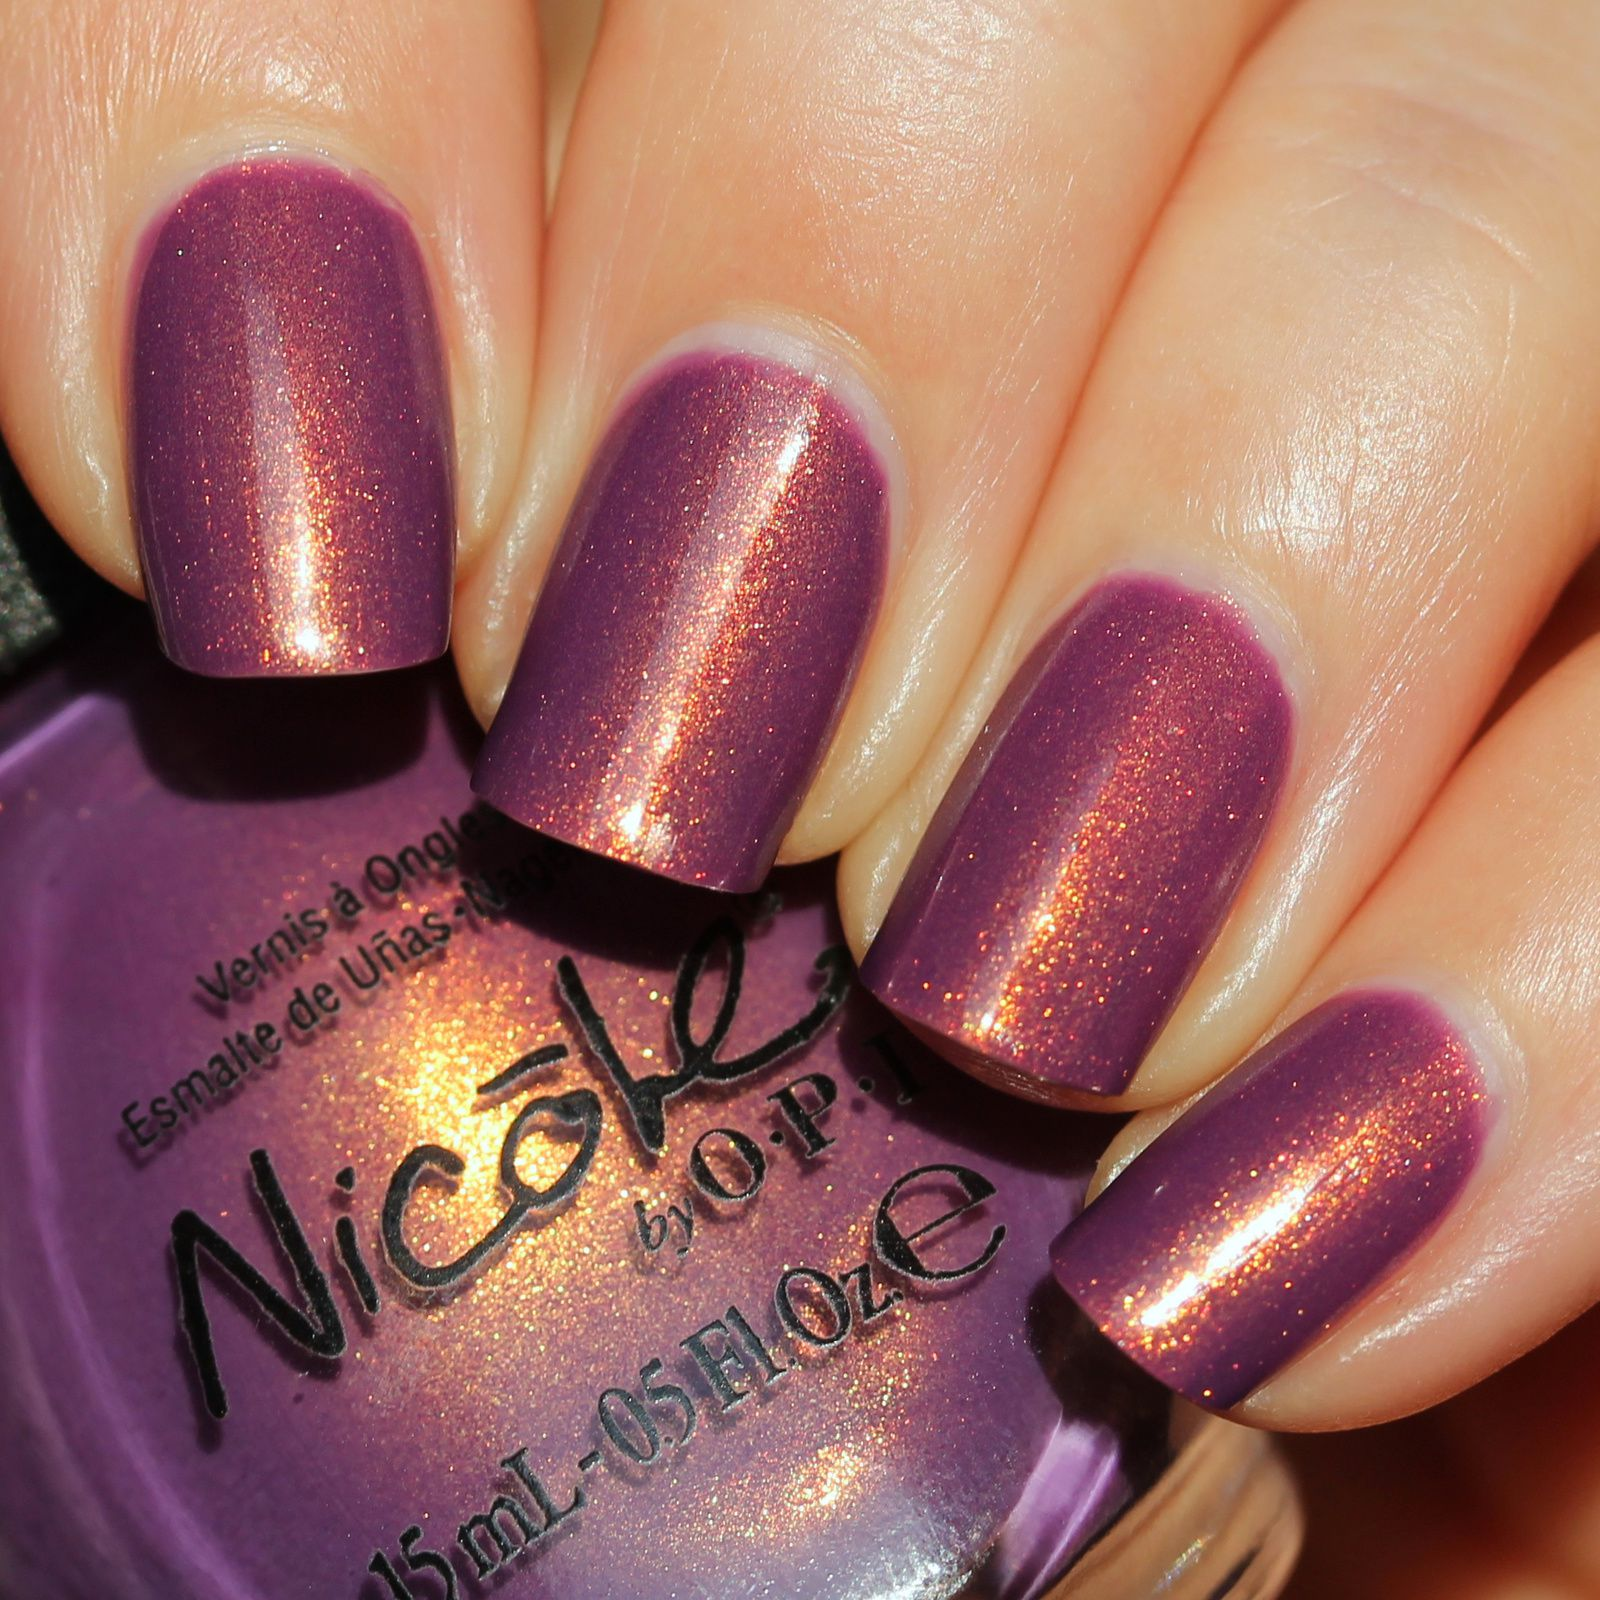 Sally Hansen Complete Care 4-in-1 Extra Moisturizing Nail Treatment / Nicole by OPI Purple Yourself Together / HK Girl Top Coat